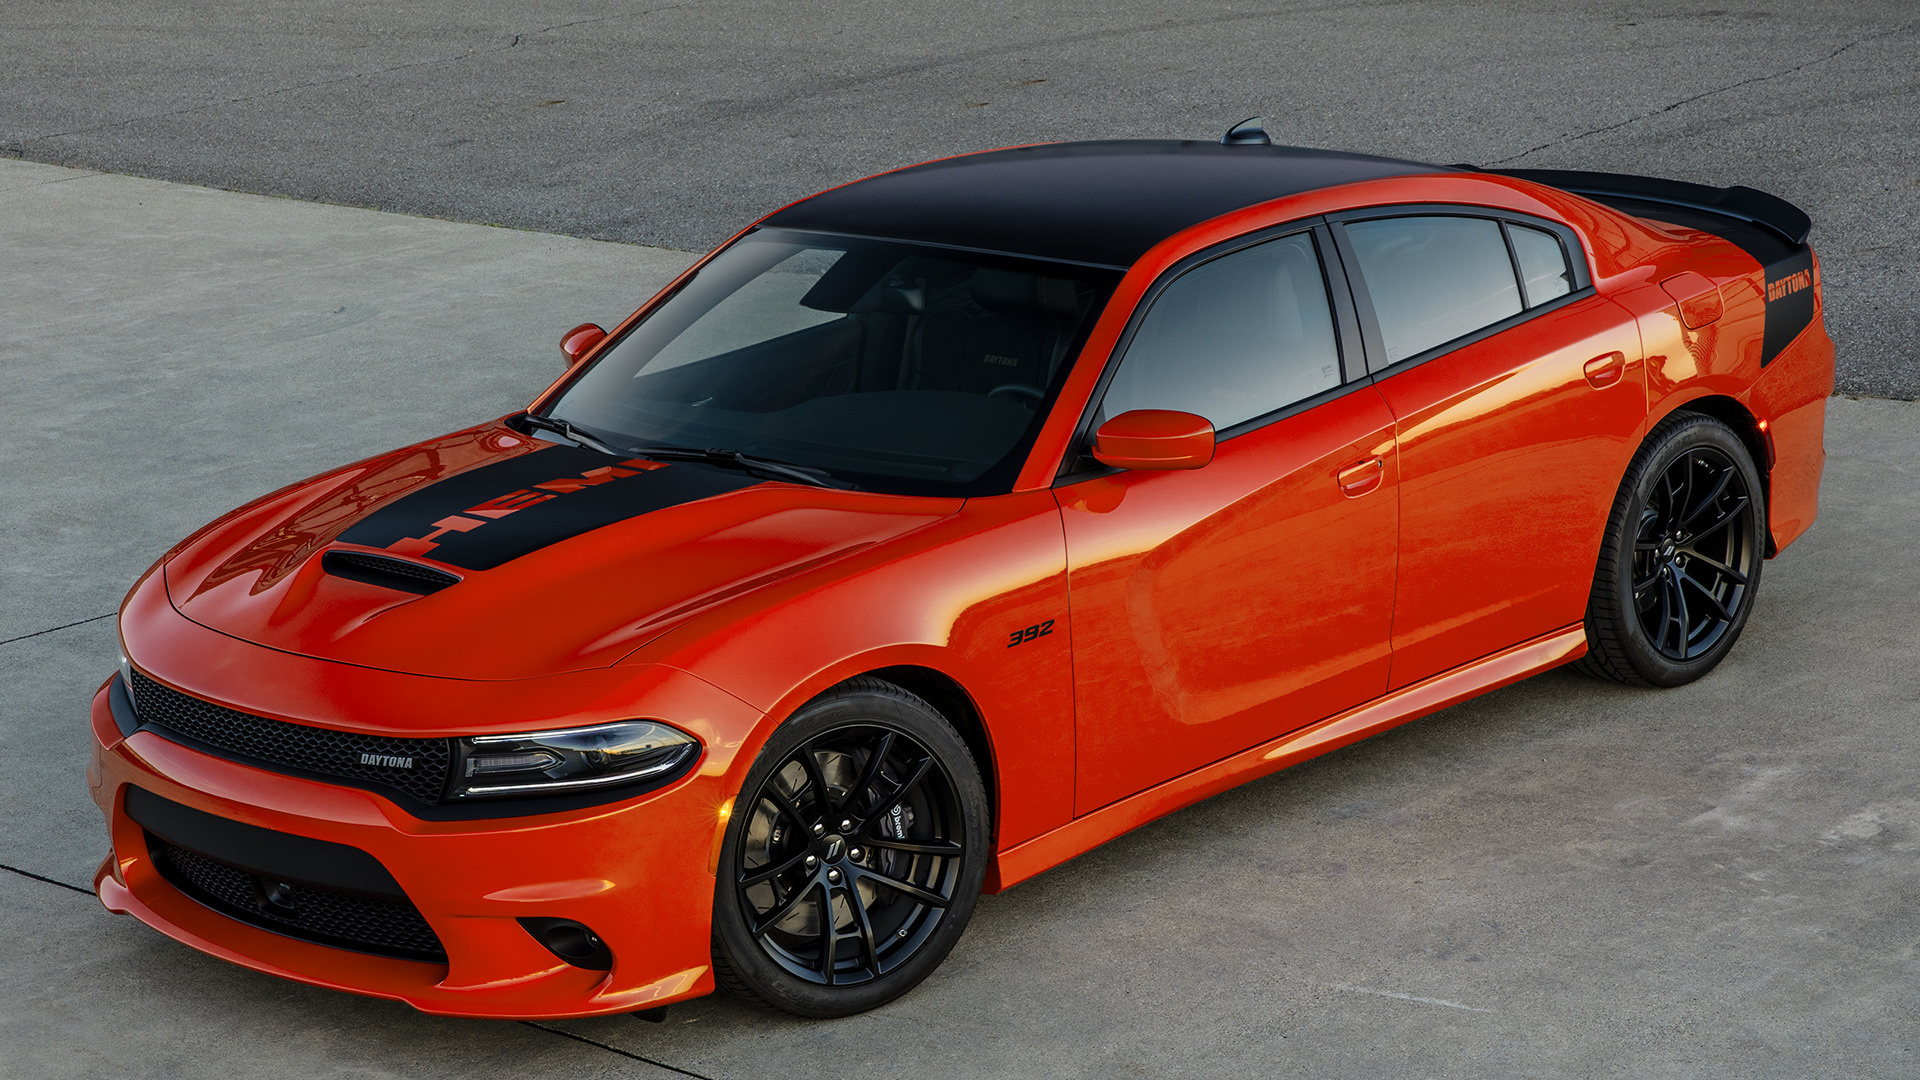 Dodge Charger Car Wallpapers Dodge Charger Daytona 392 2017 Wallpapers And Hd Images